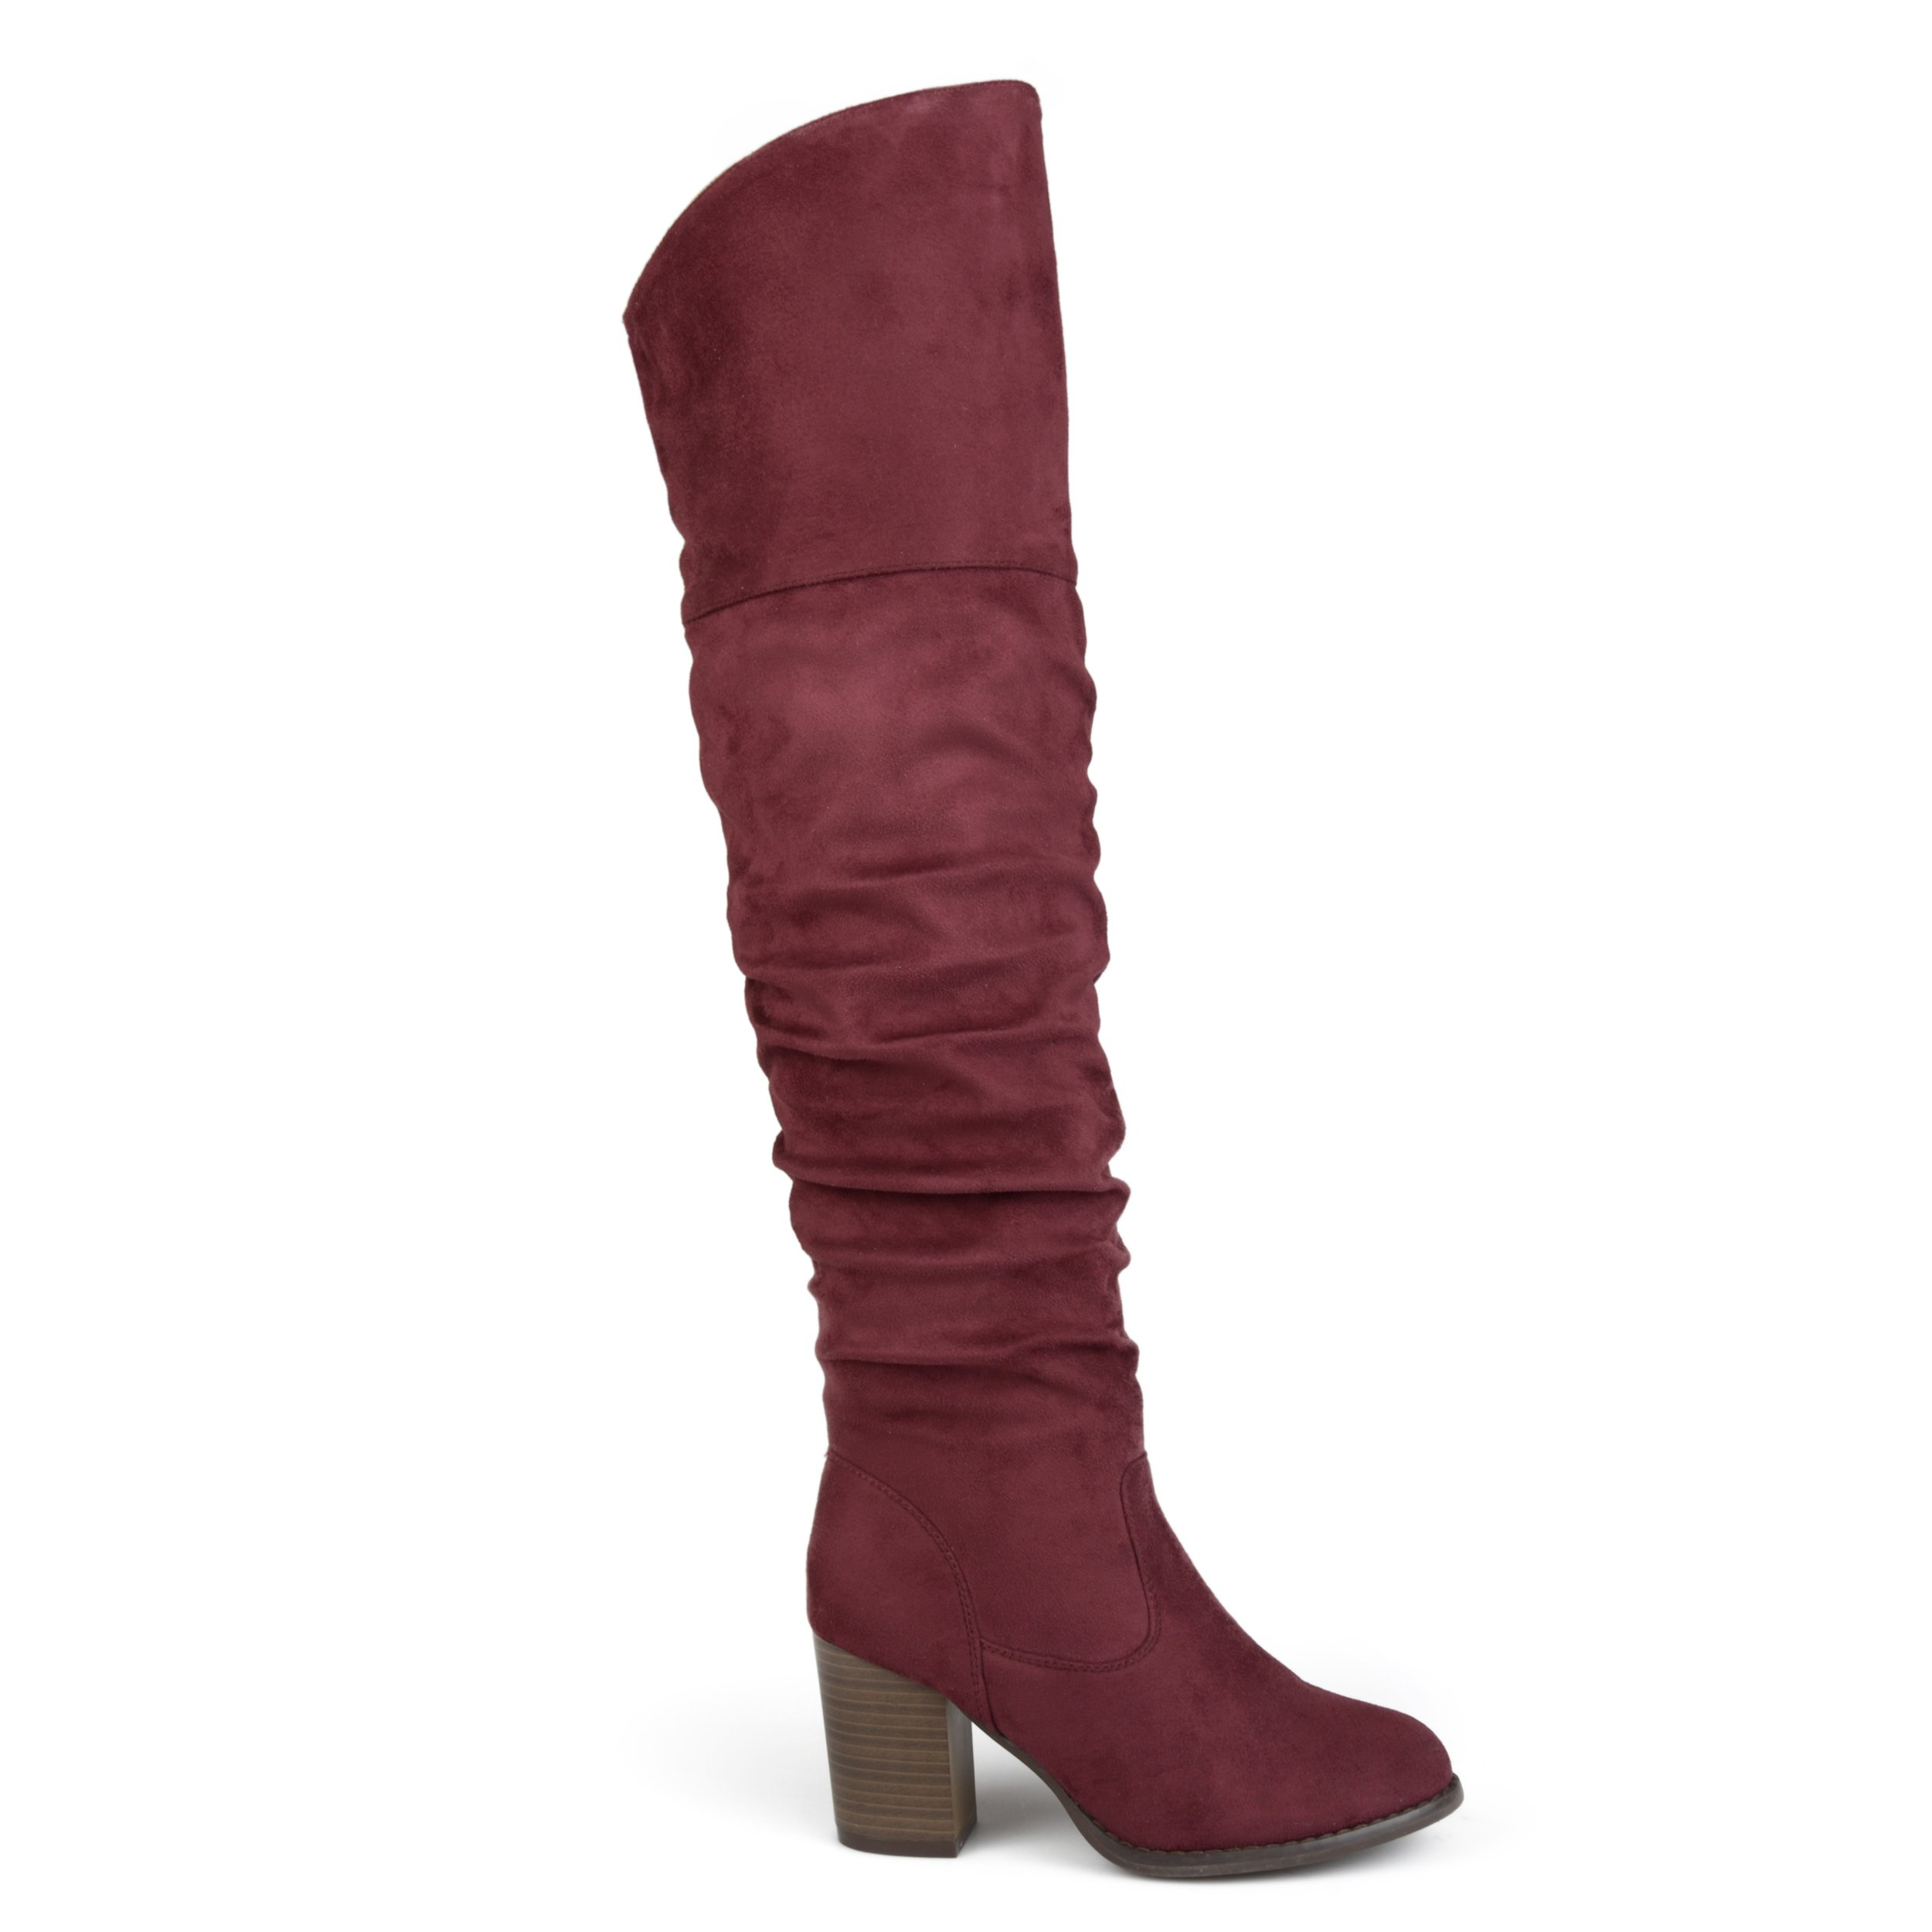 Brinley Co Womens Regular Wide Calf and Extra Wide Calf Ruched Stacked Heel Faux Suede Over-The-Knee Boots Wine, 7 Extra Wide Calf US